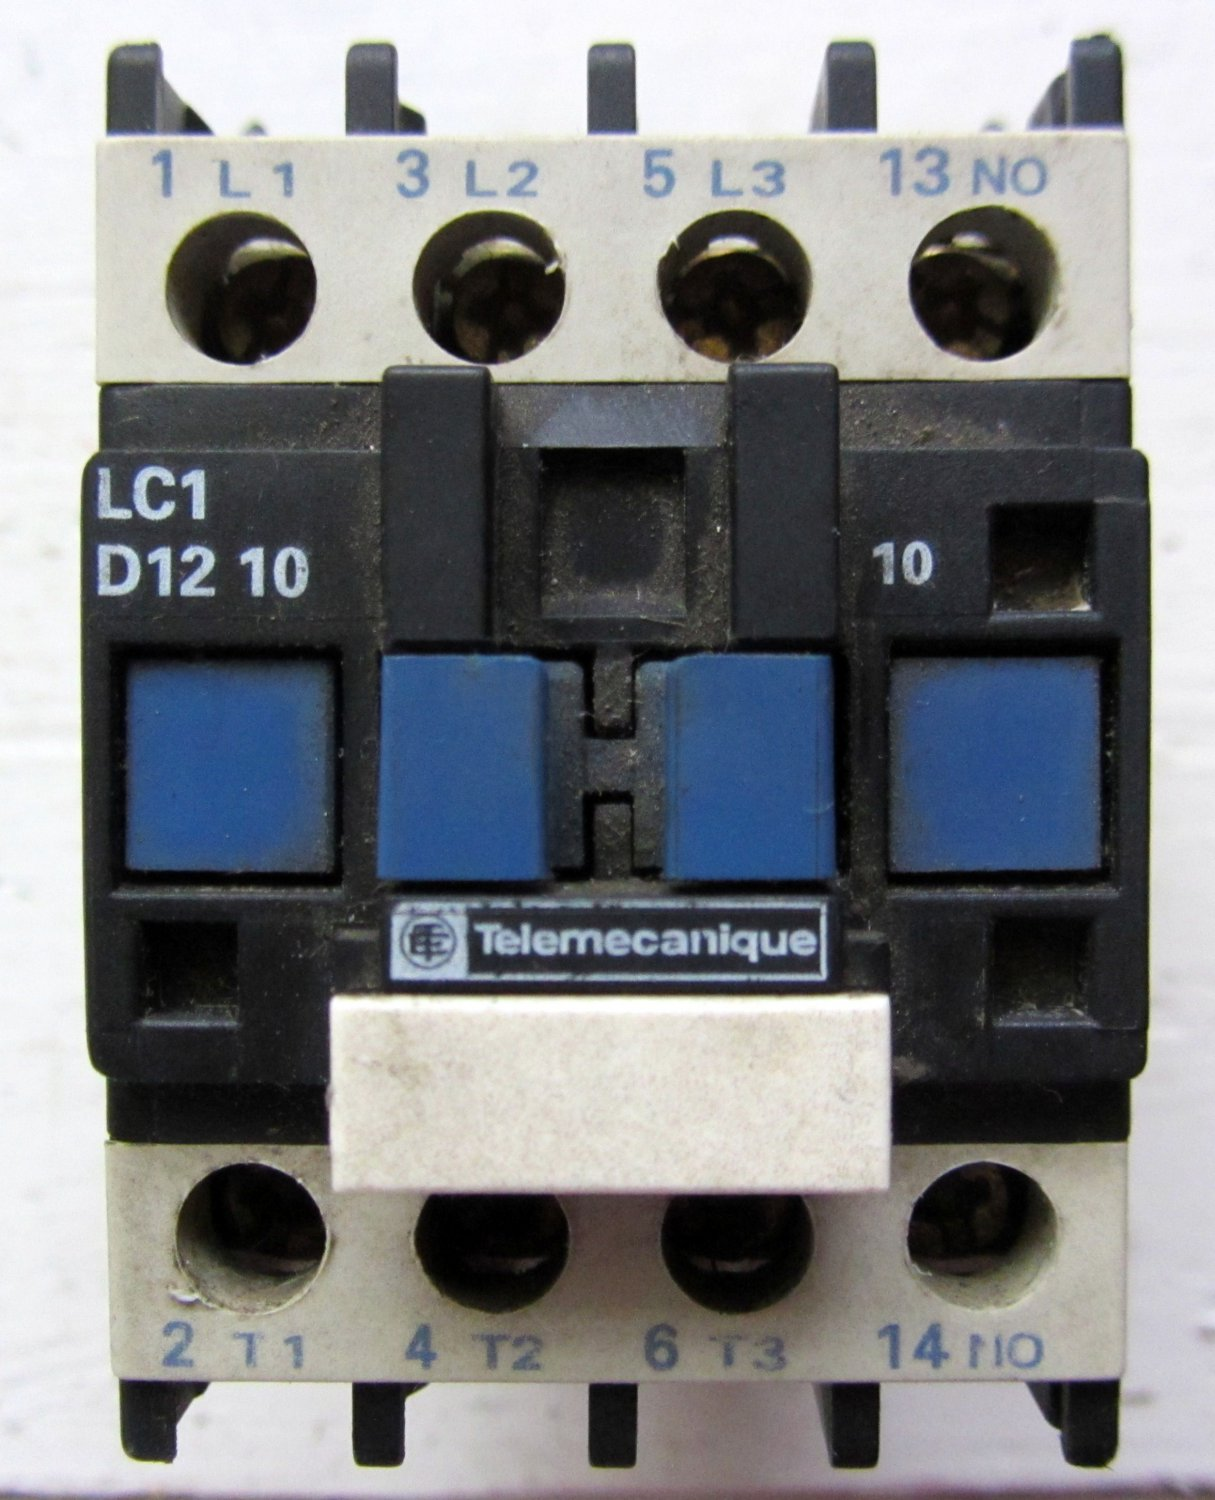 Telemecanique lc1d1210 120 vac motor starter contactor 25 amp 600 vac 1 no aux Telemecanique motor starter